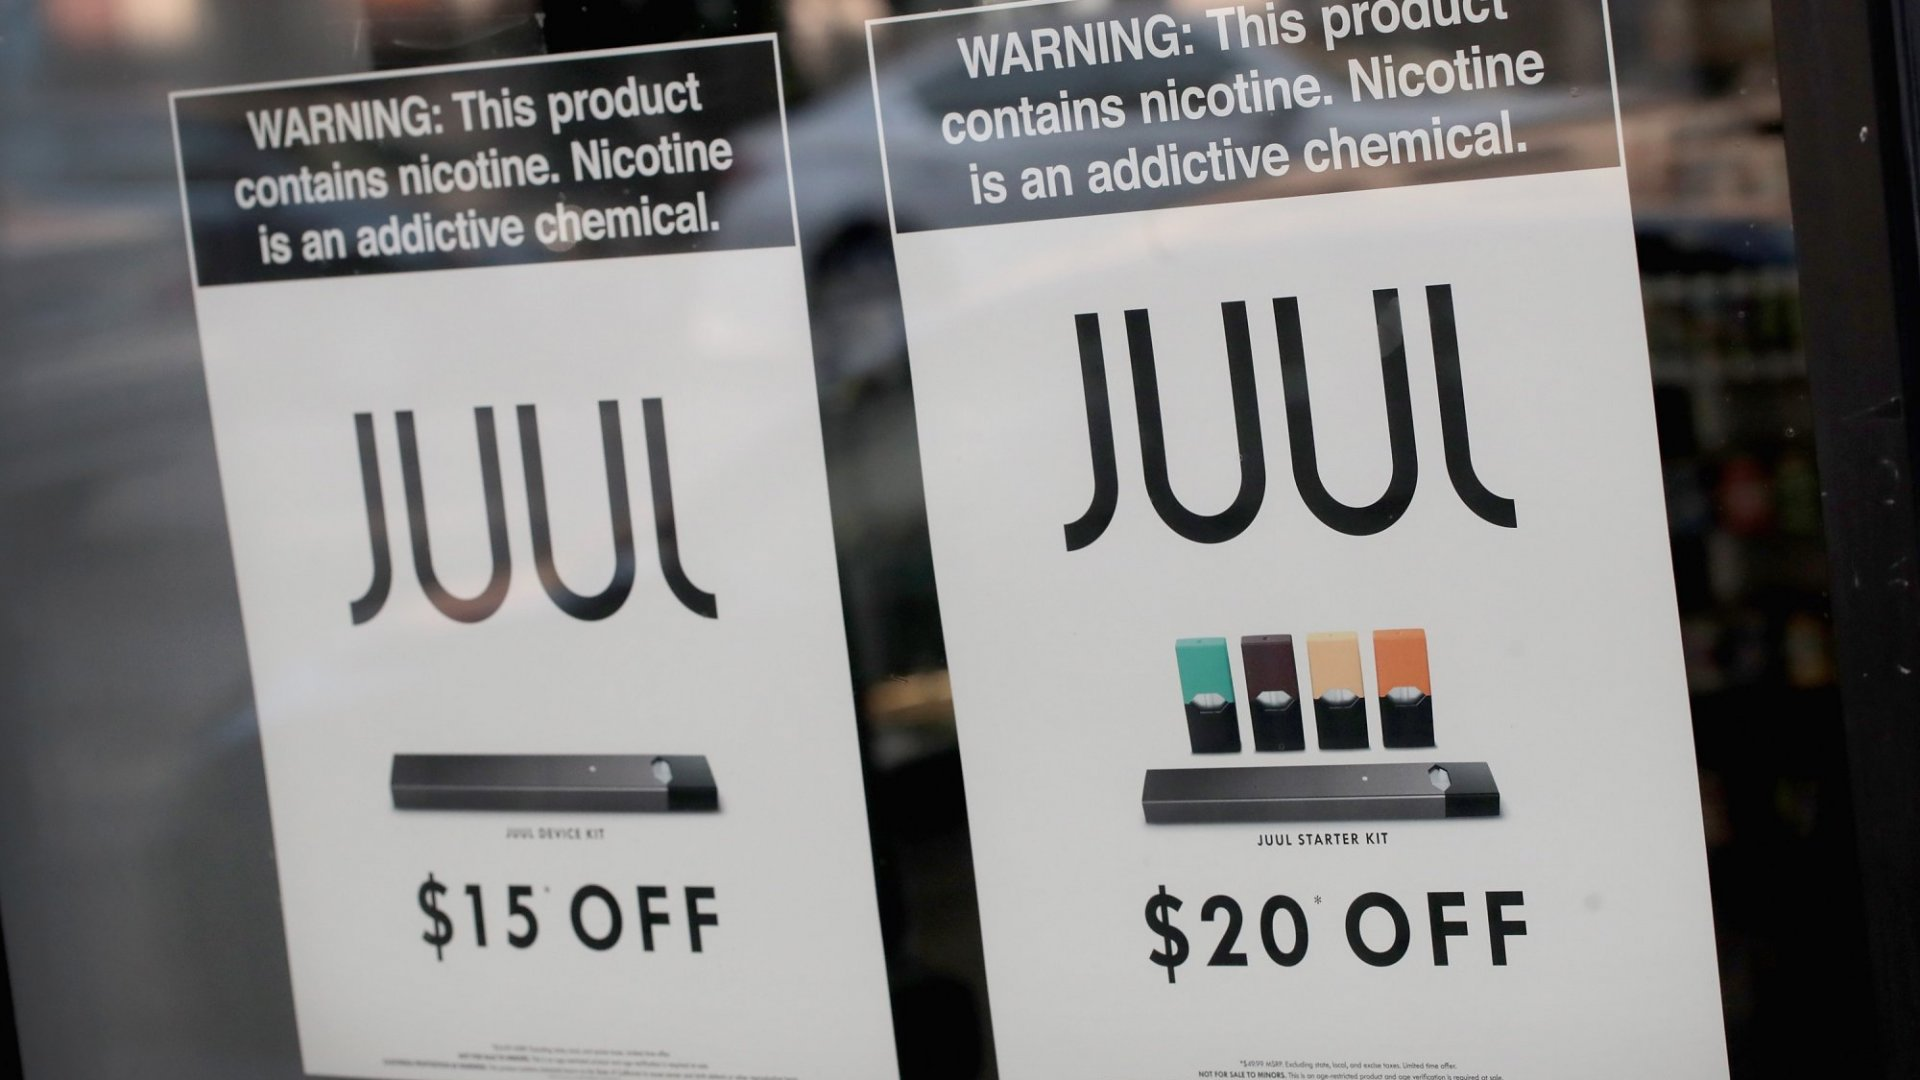 Juul Vehemently Denied It Was Marketing To Teens. Then Its CEO Apologized to Parents of Addicted Teens